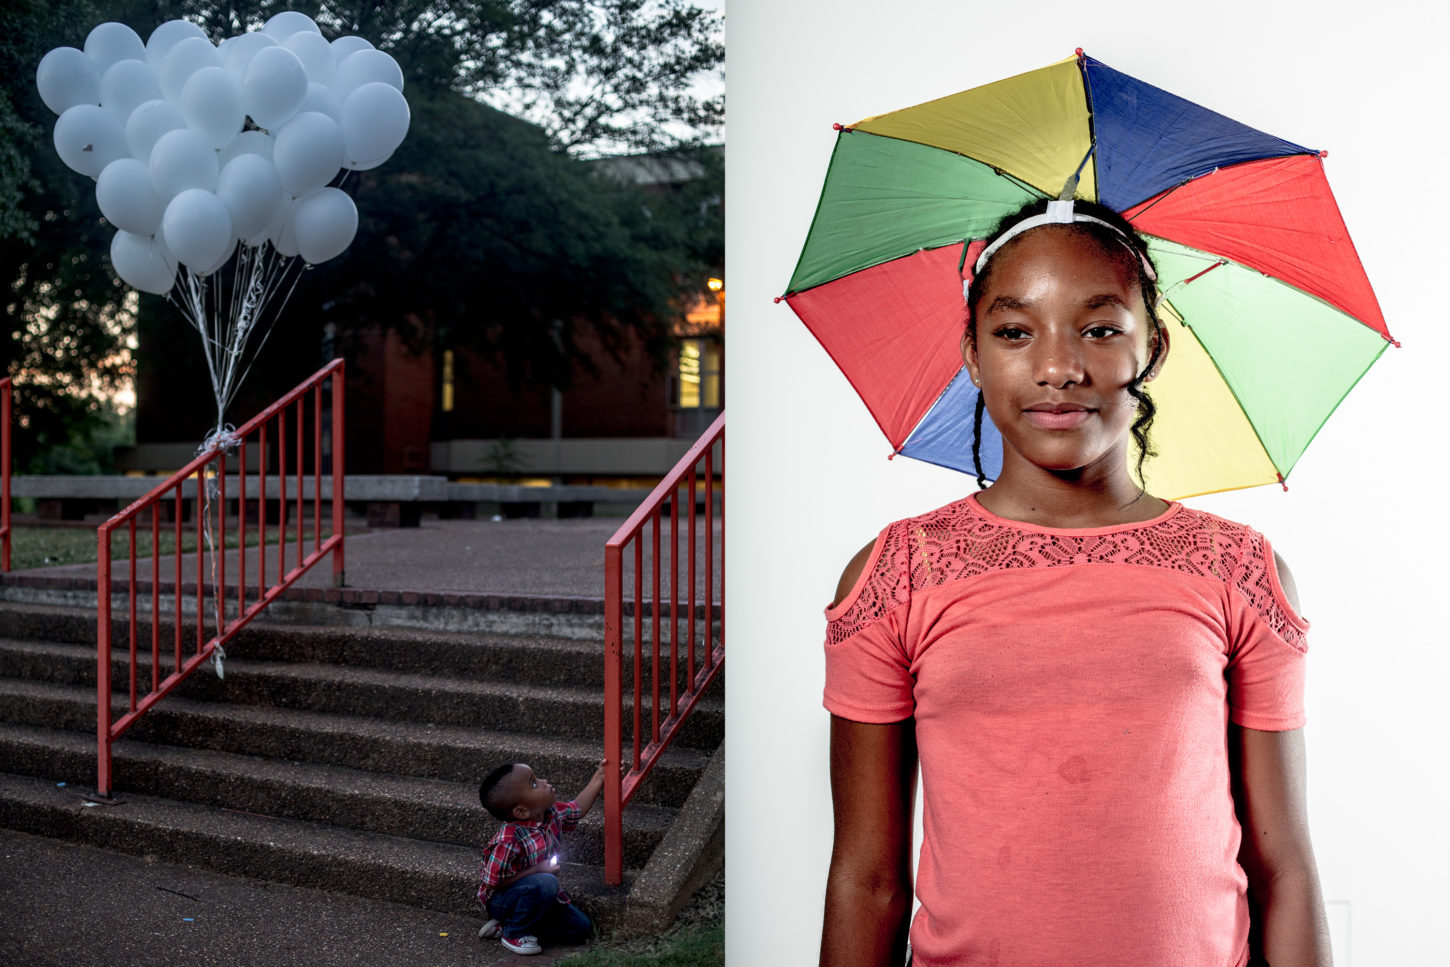 Andrea Morales, (Left) A community vigil for the victims of violence at Northside High School; (Right) Santaria, 12, in the studio